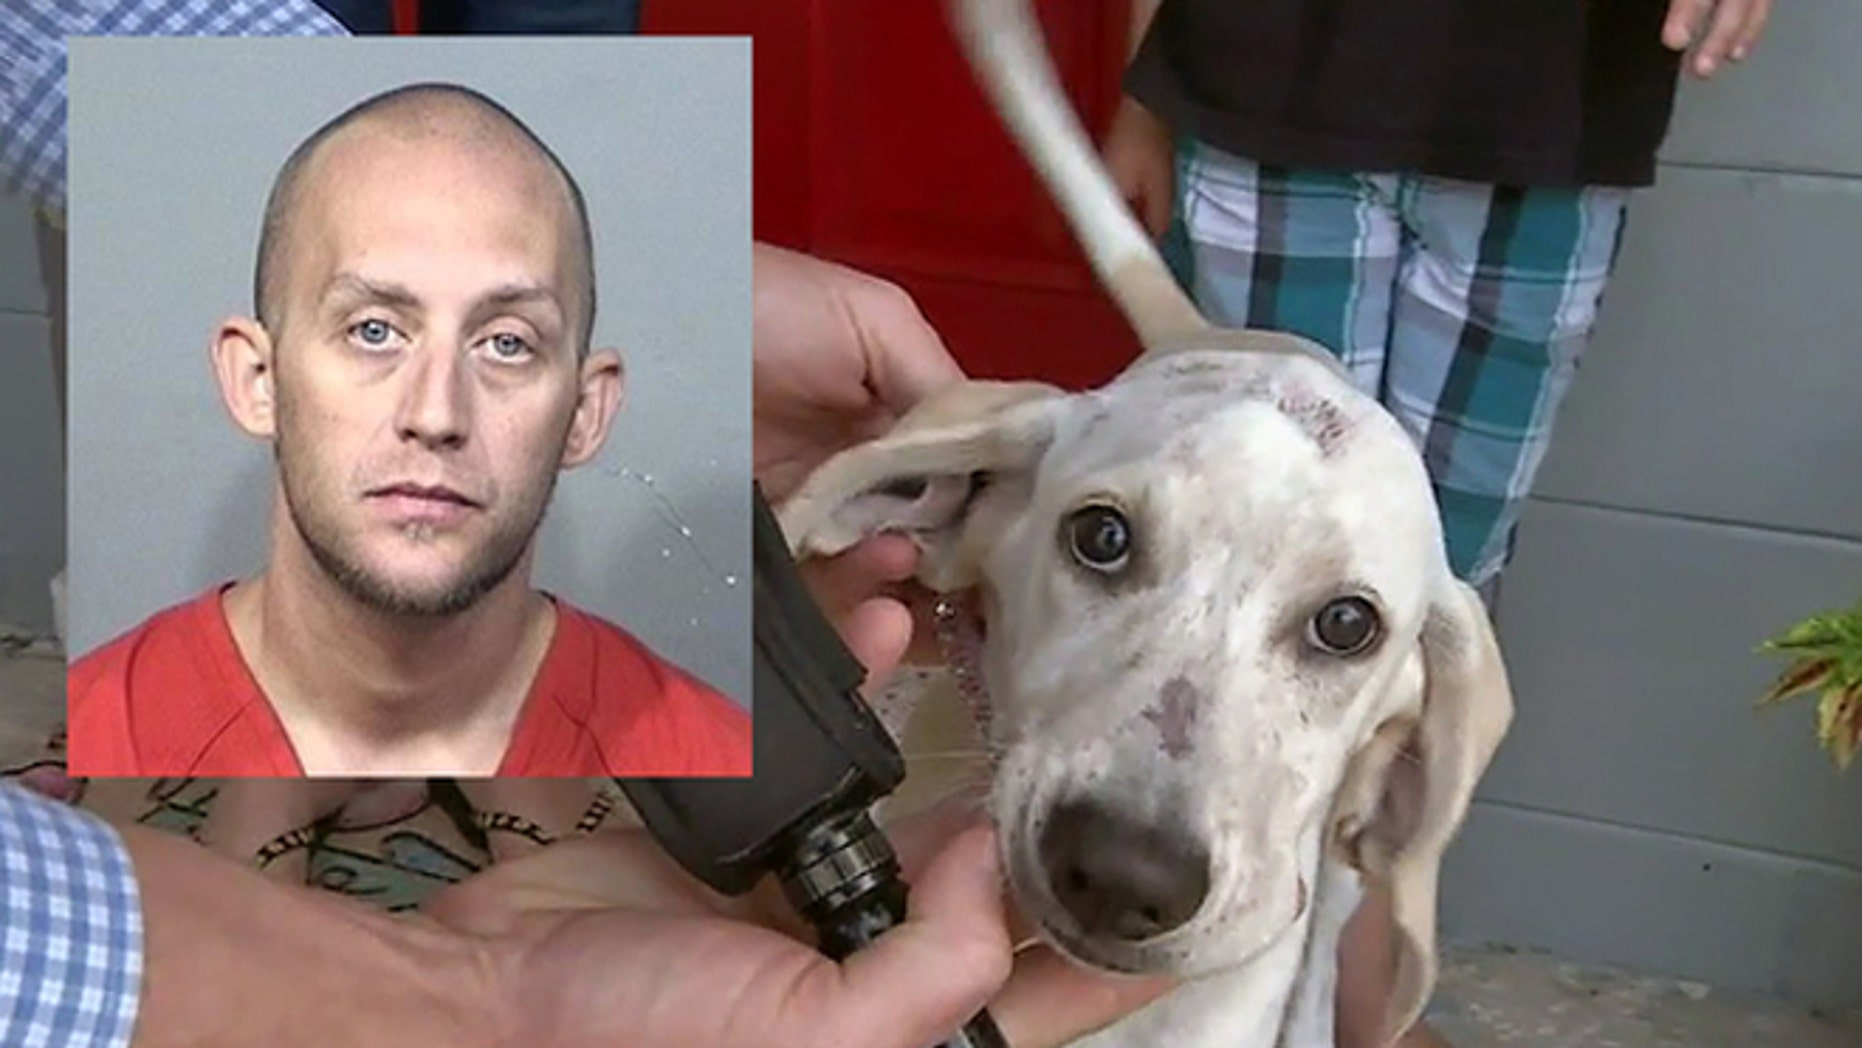 Zachary Kelly, 30, was arrested for allegedly biting the family dog.